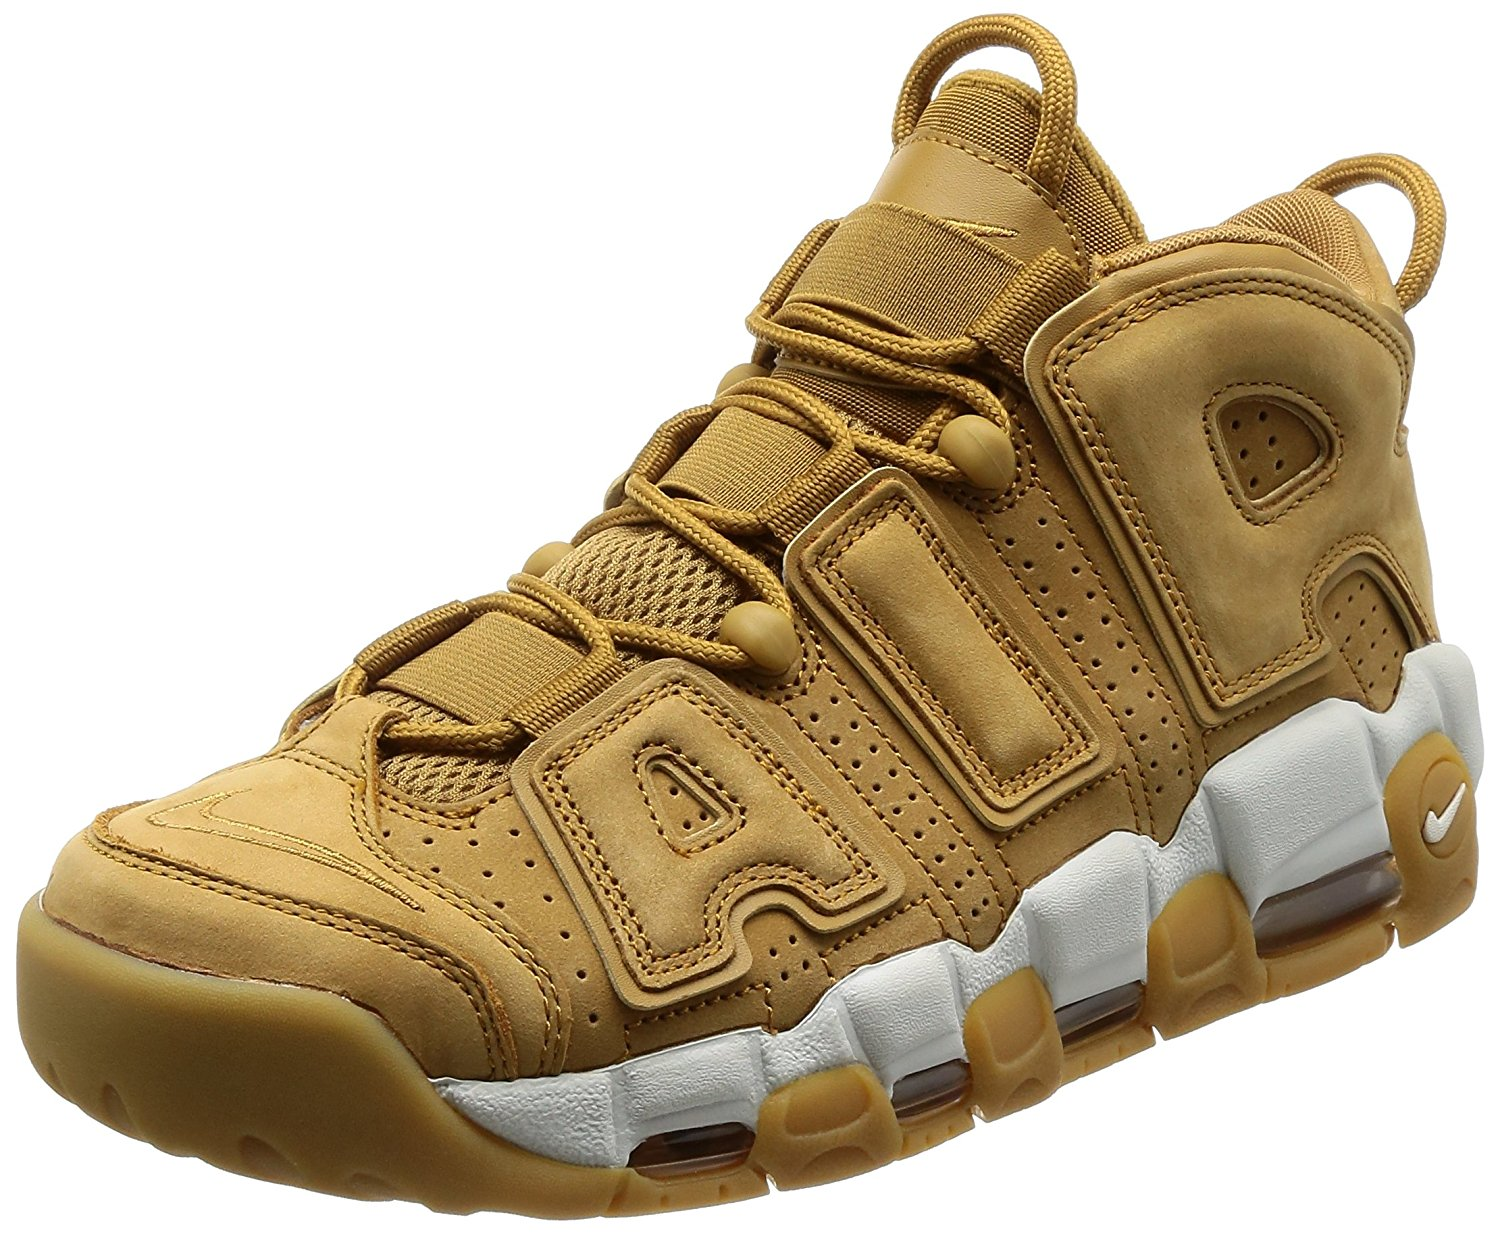 wholesale dealer f1a13 cdfff Nike Air More Uptempo Reviewed   Tested in 2019   WalkJogRun